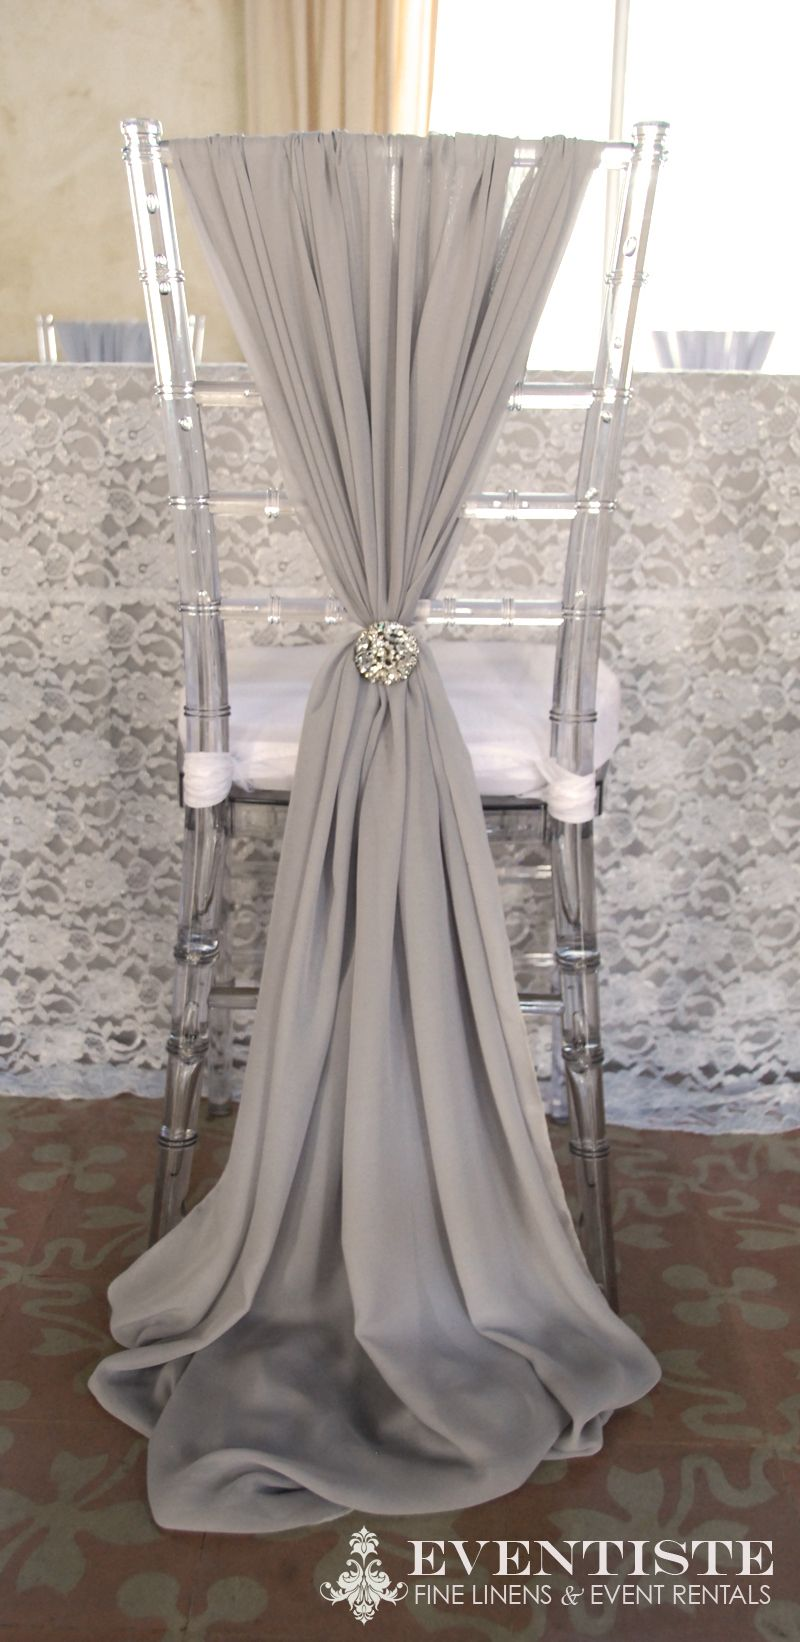 Chiffon melissa chair cover fairytale wedding pinterest for Chair covers for wedding design